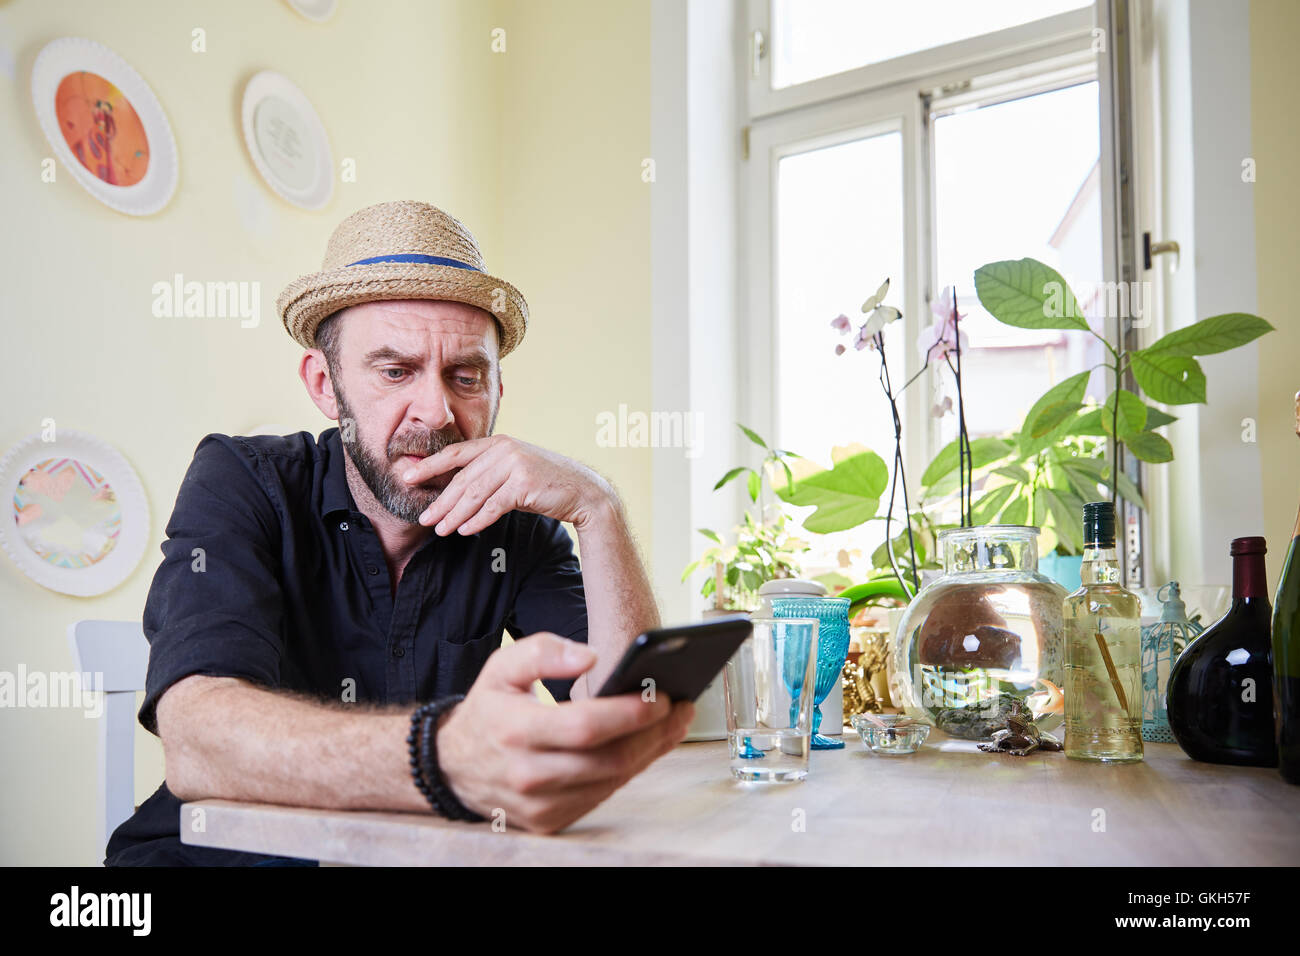 Man with hat and beard sitting and pondering in kitchen - Stock Image